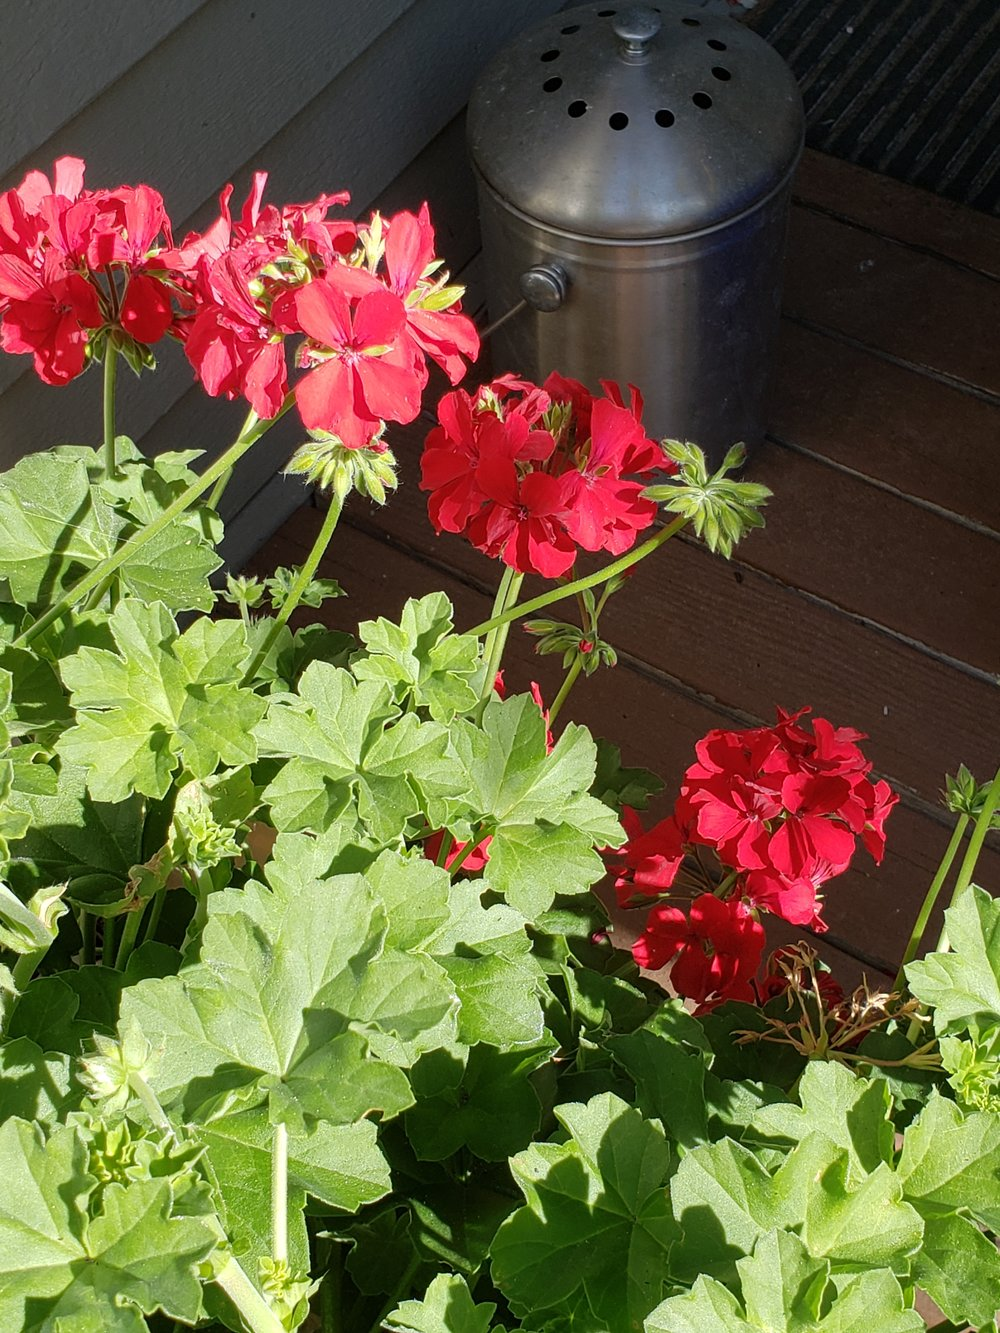 Red Geranium - Officially a Pelagonium but who's checking?